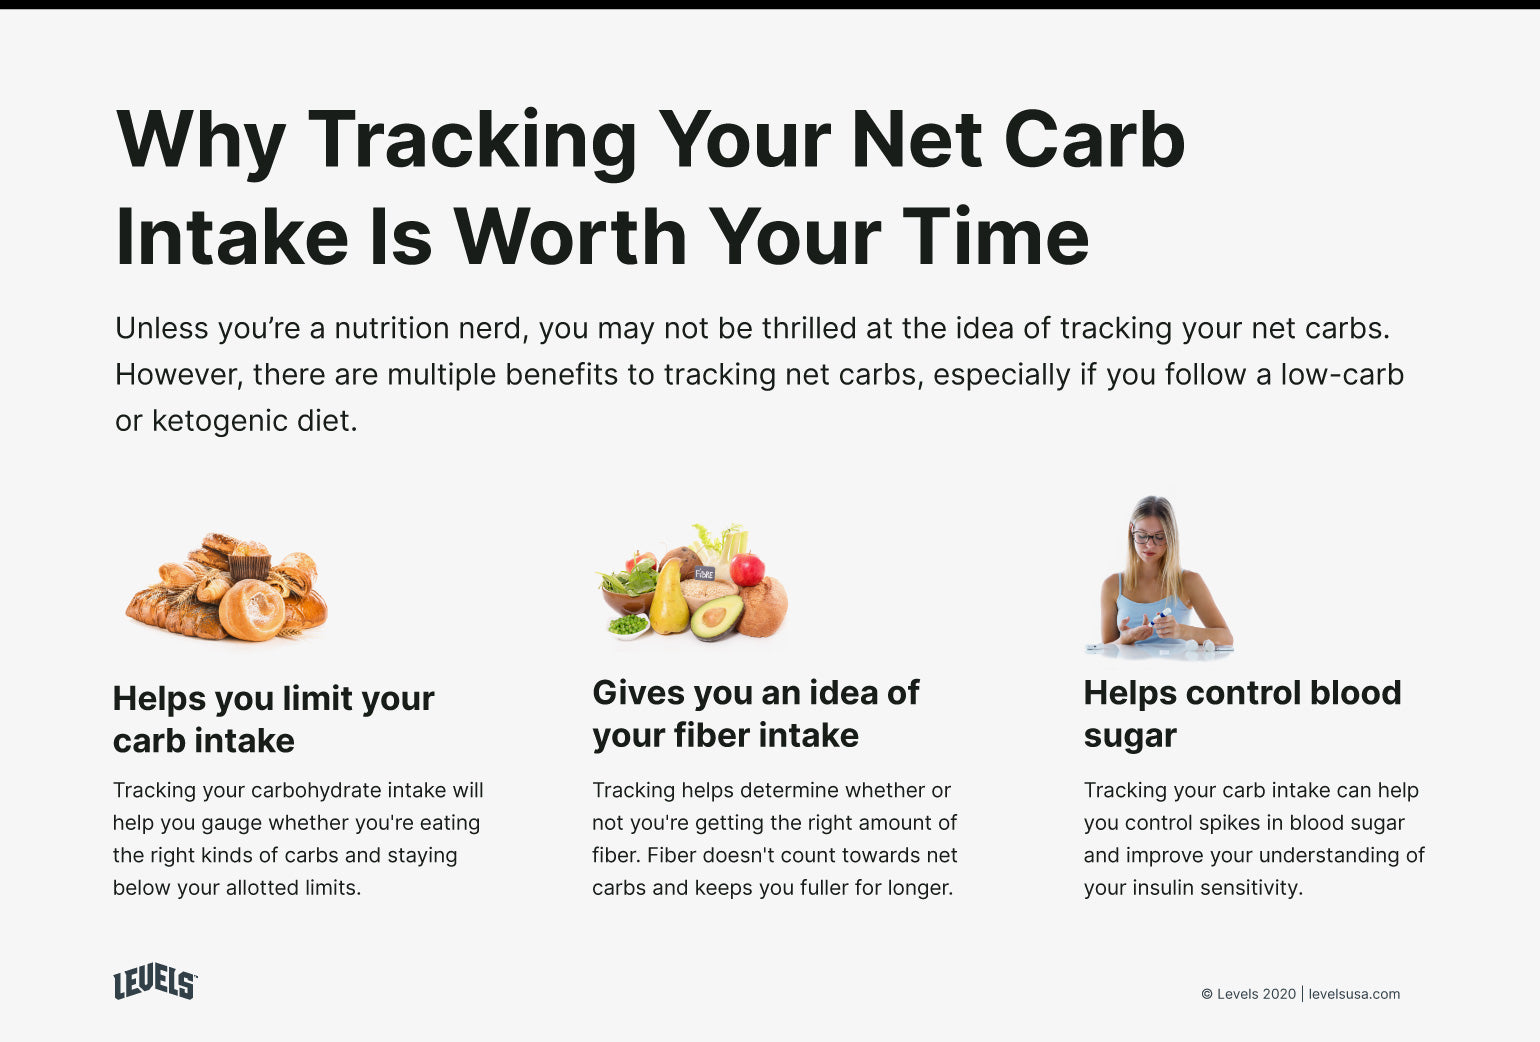 Benefits of Tracking Net Carb Intake - Infographic